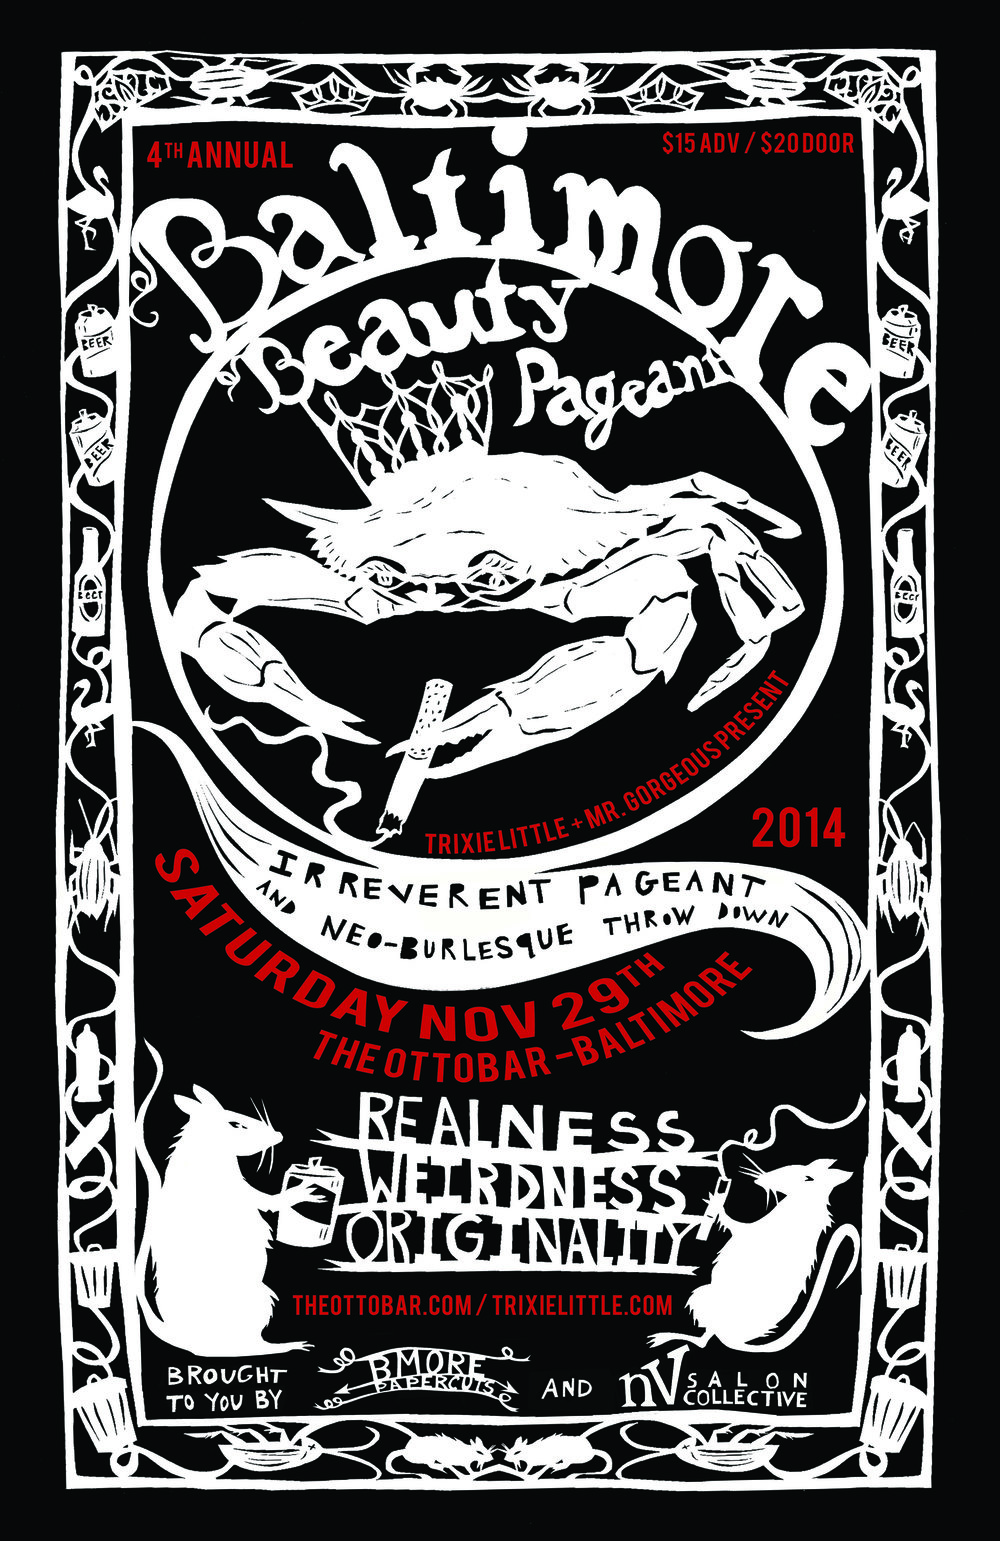 BBP 2014 POSTER FINAL2 USE THIS ONE .jpg